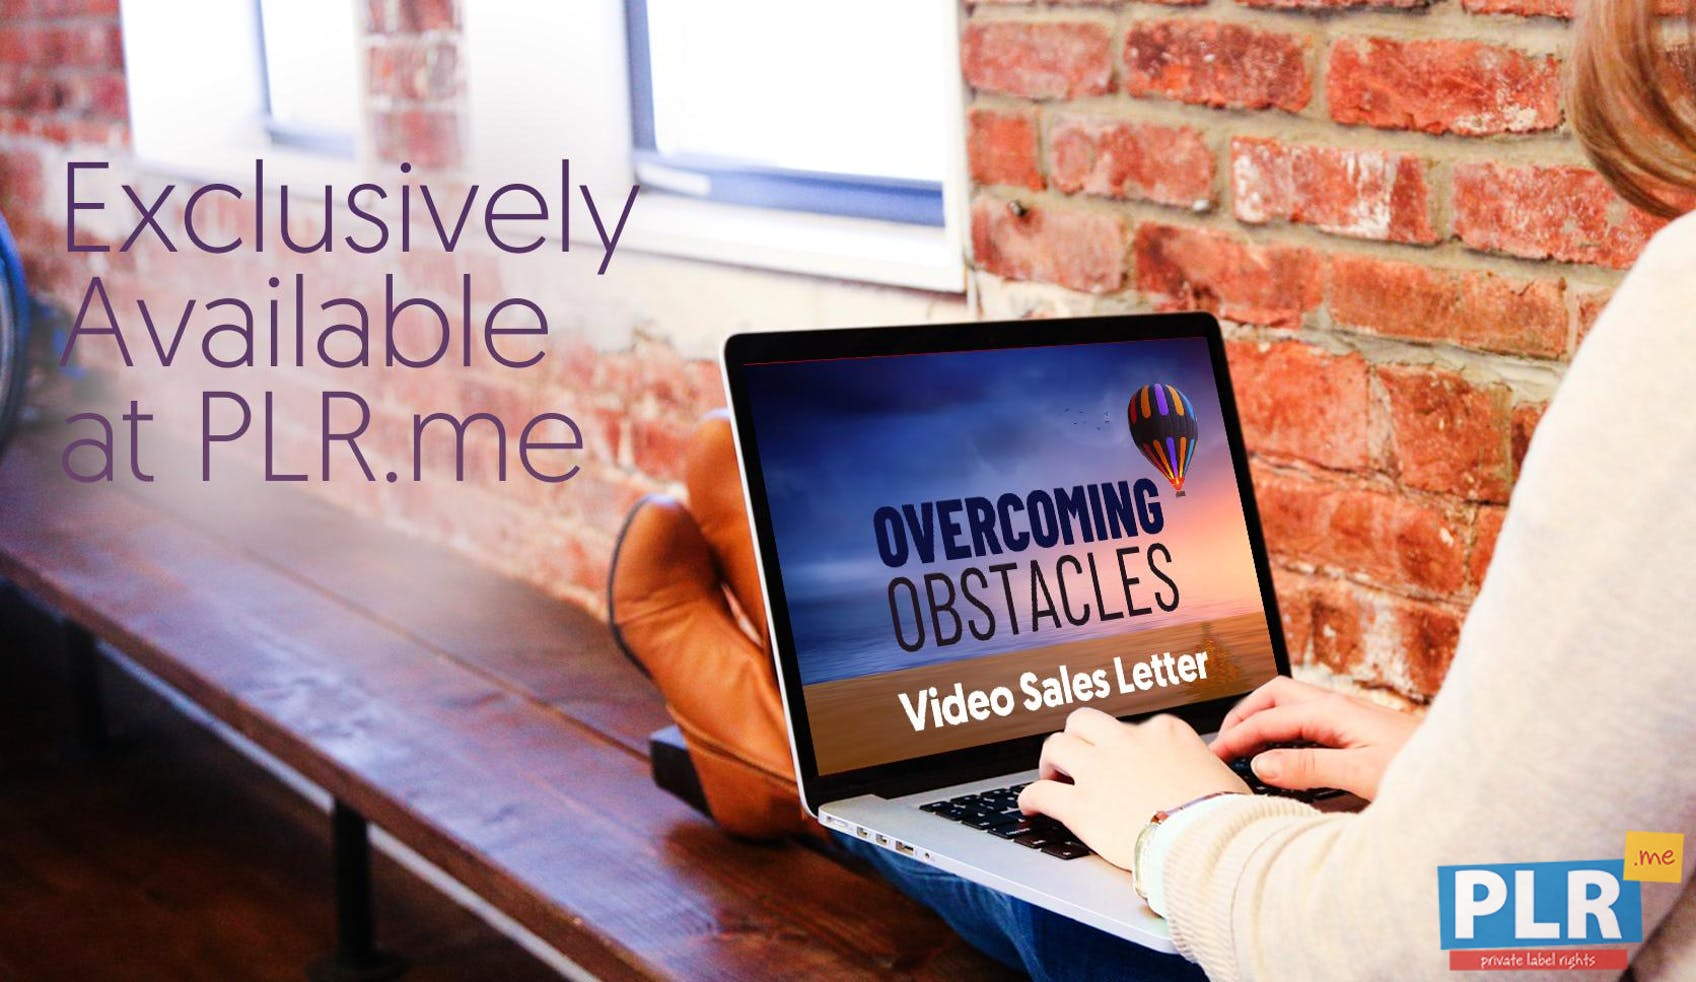 Overcoming Obstacles - Video Sales Letter Slides